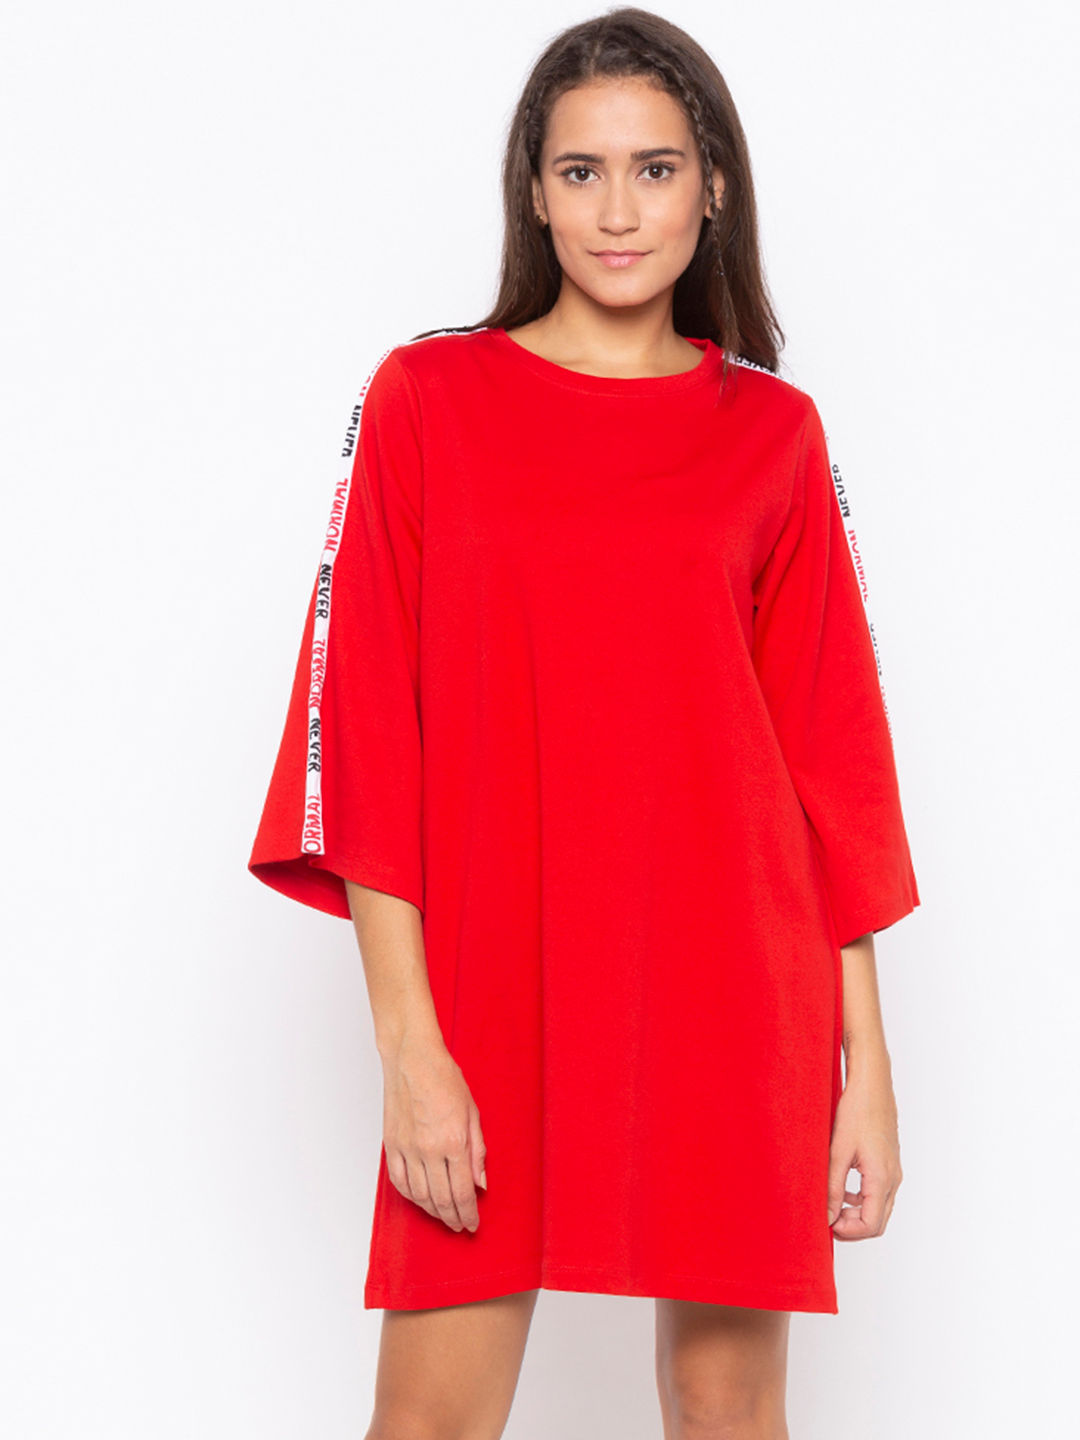 Disrupt Red A-Line Dress For Women's